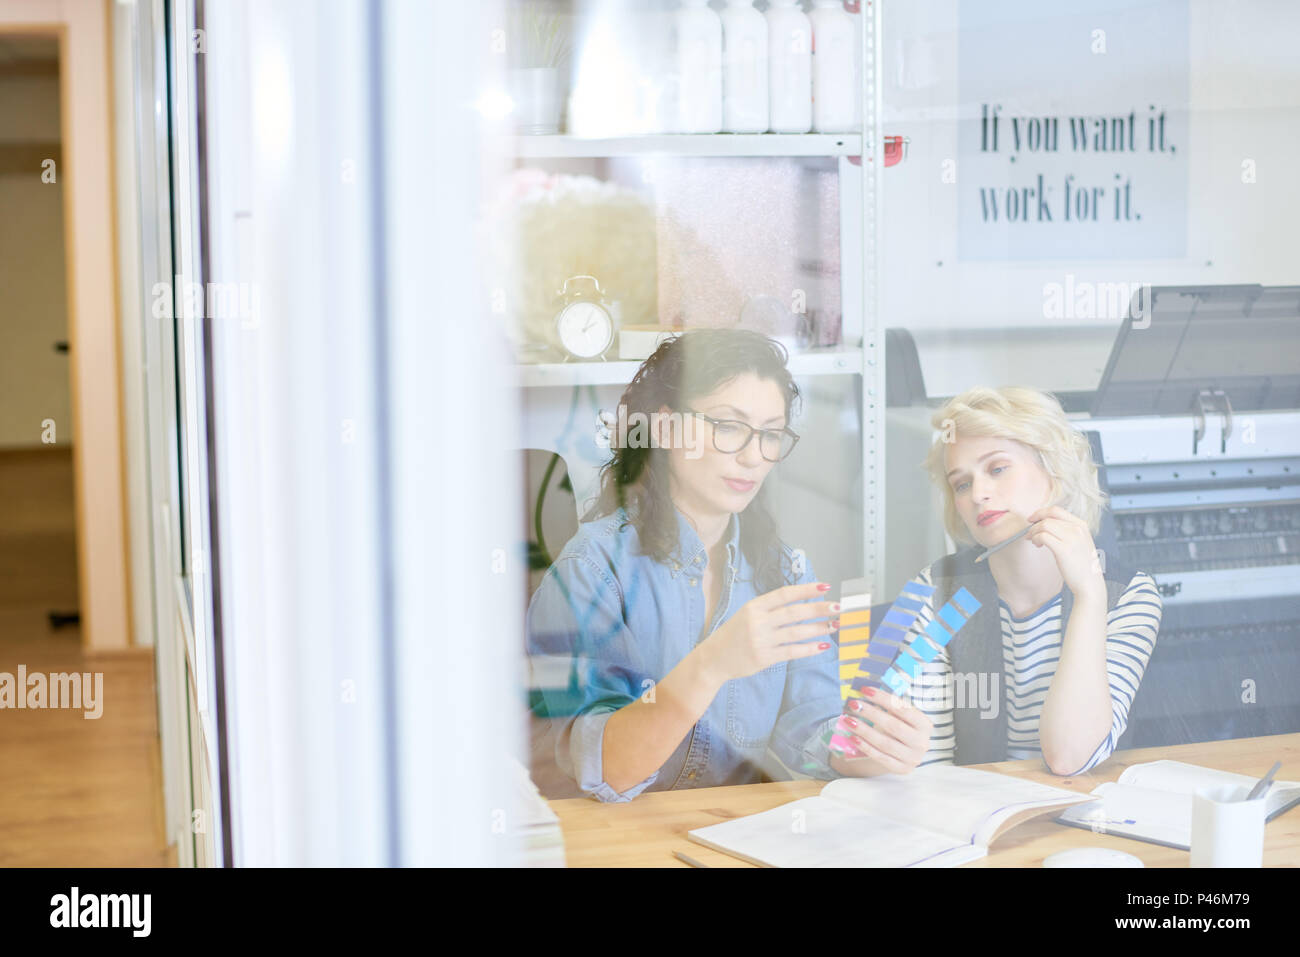 Women selecting color for project - Stock Image